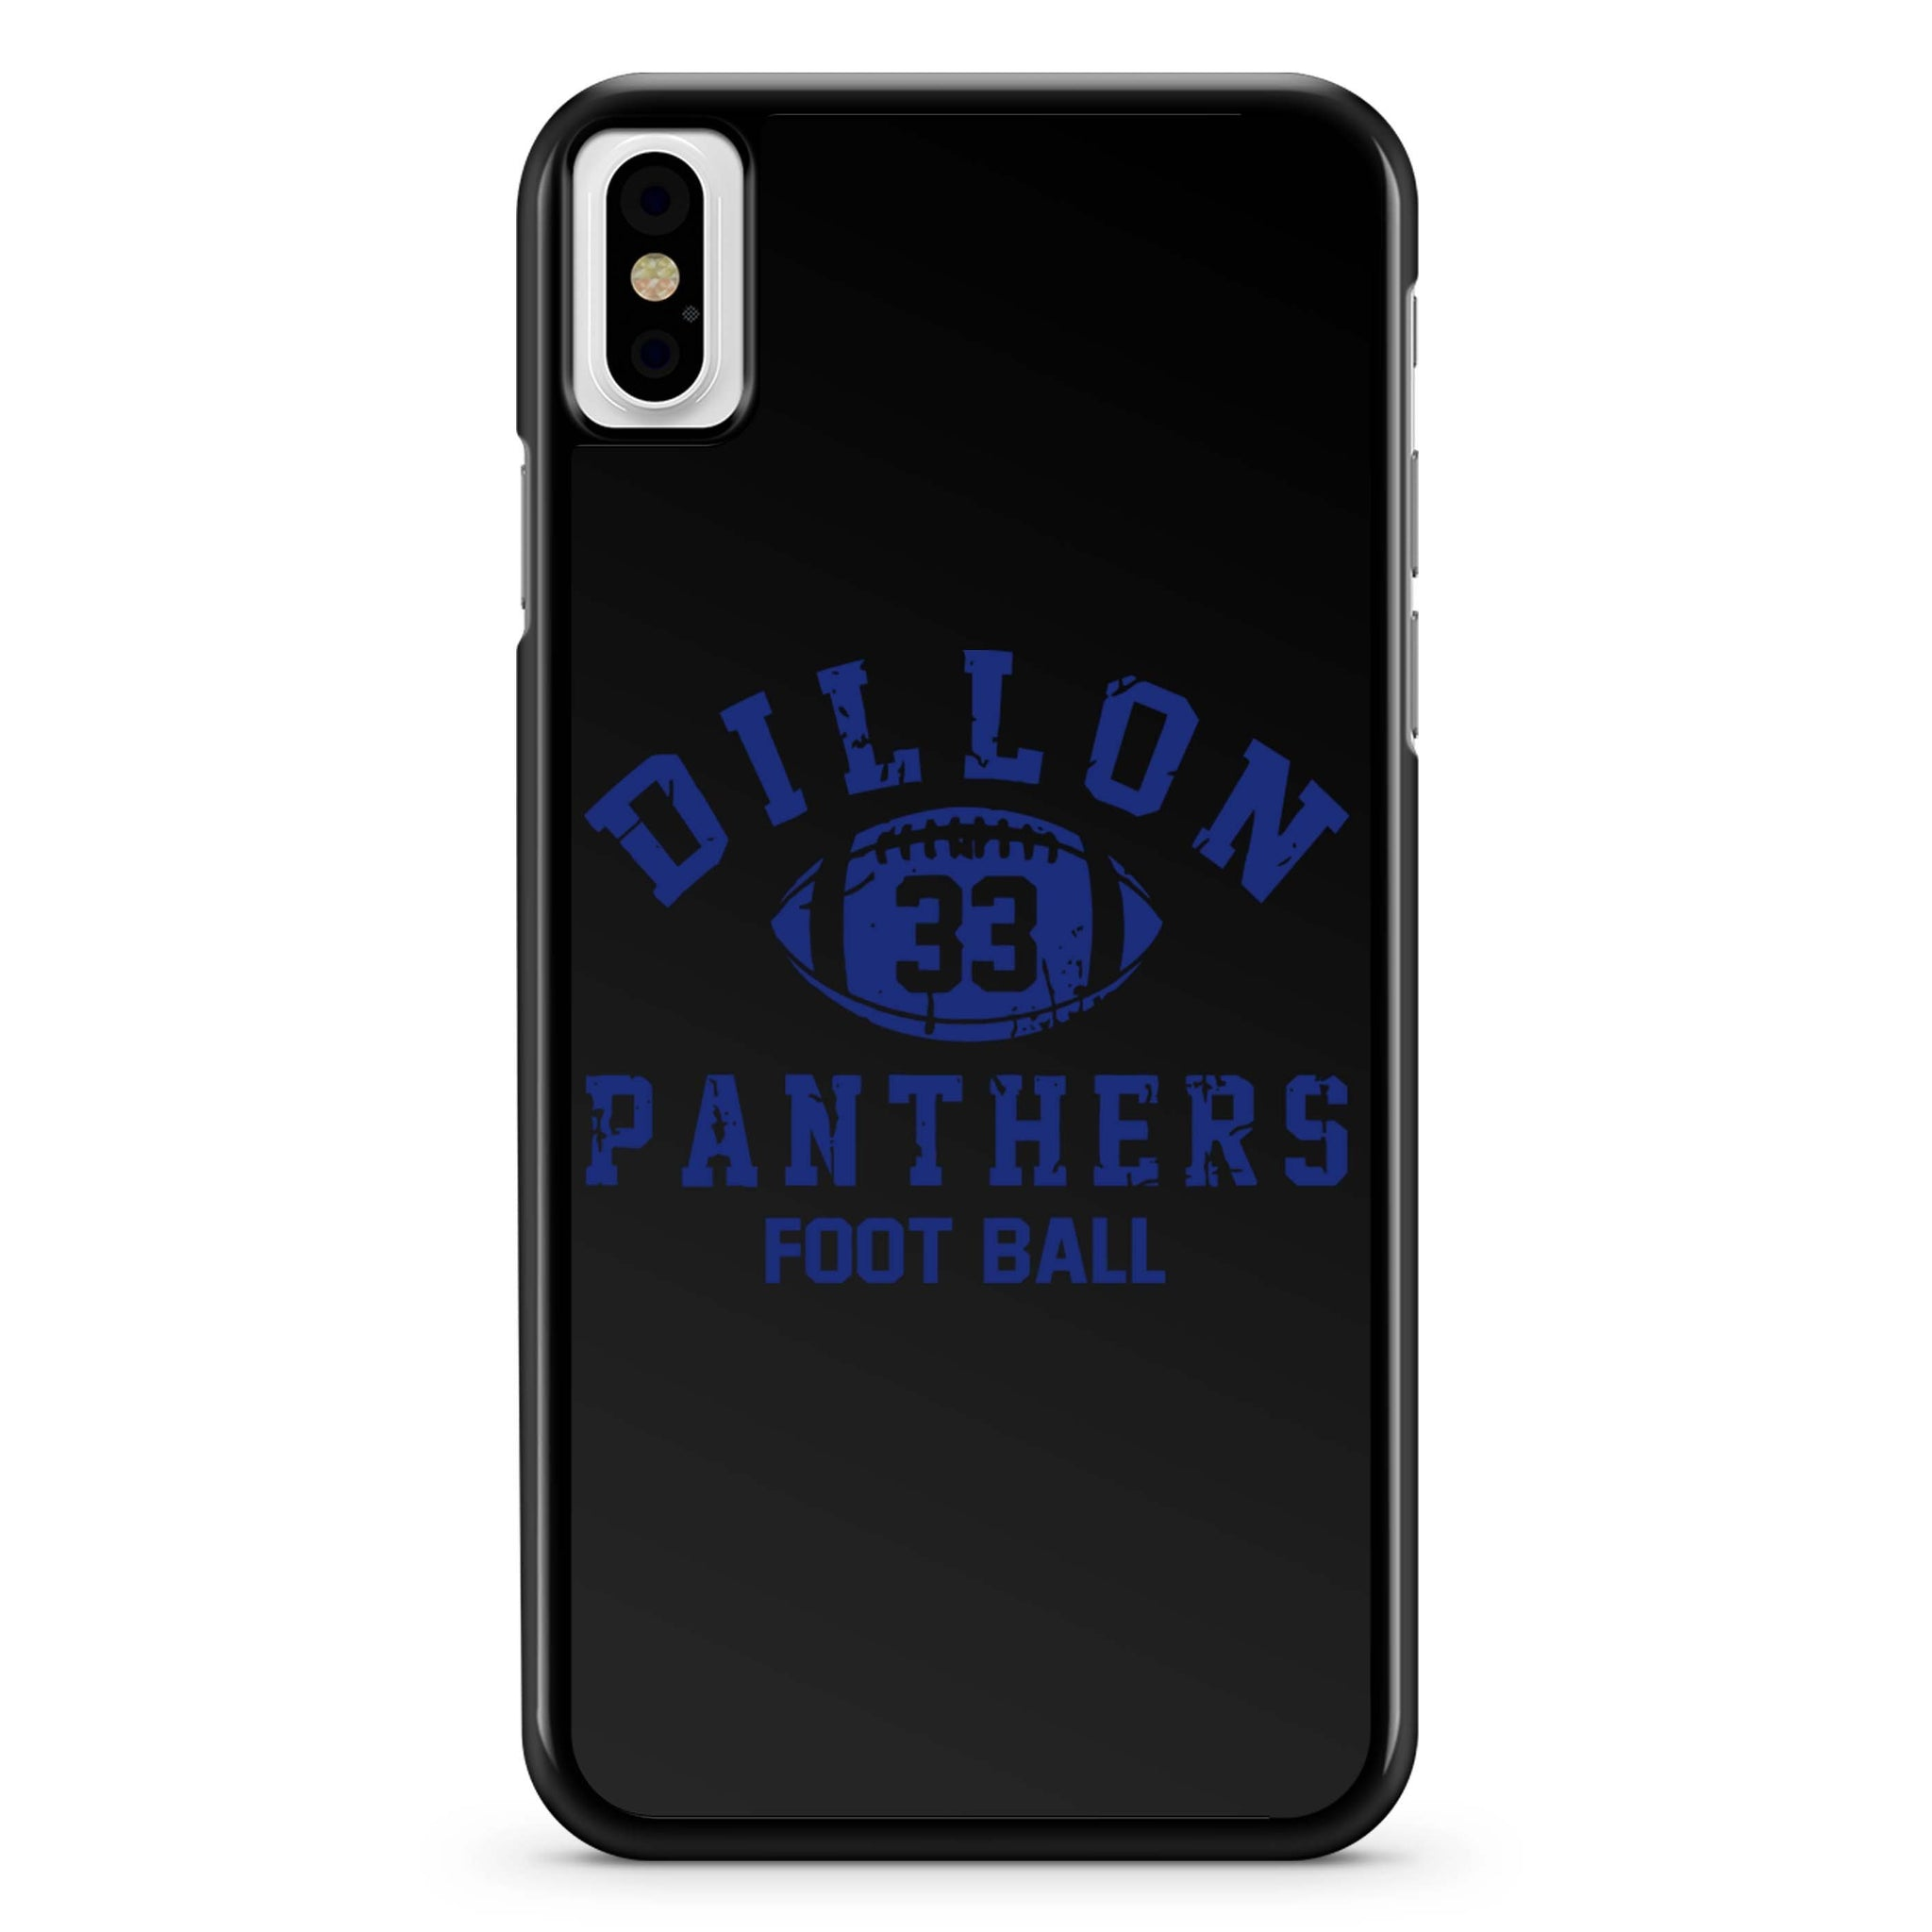 Dillon Panthers 33 Football iPhone X Case